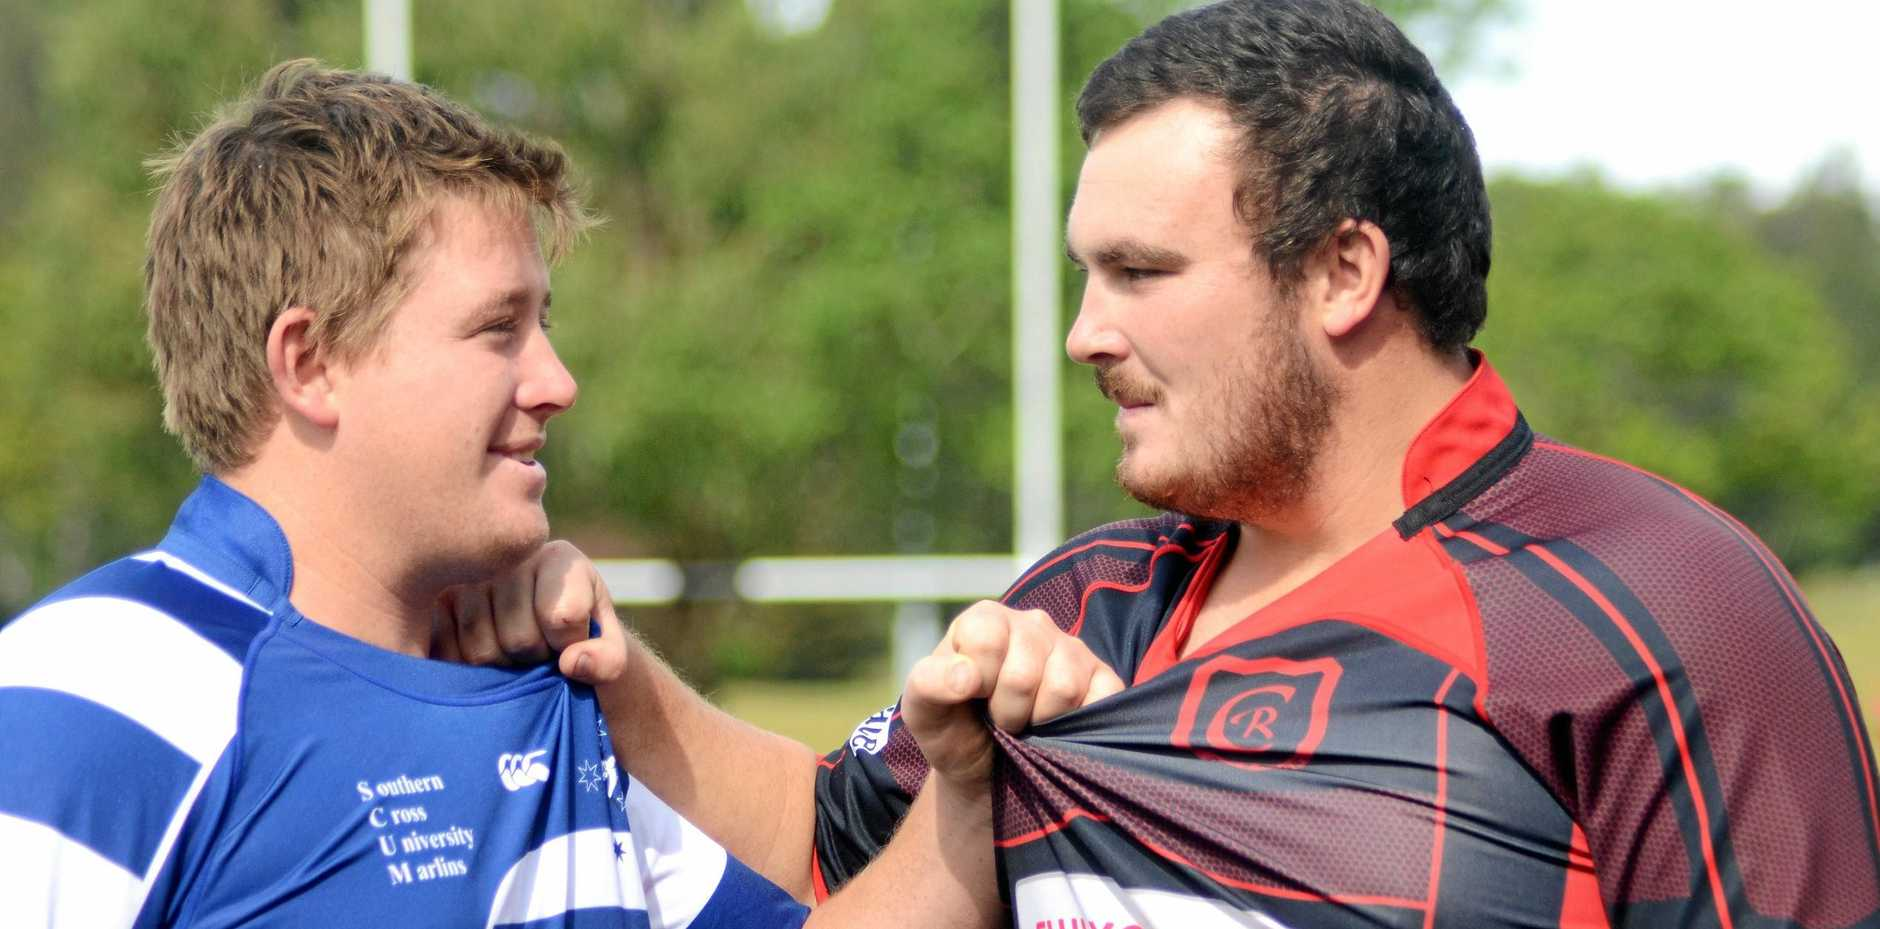 LET'S GET IT ON: Matthew Potts and James Bellamy were teammates last weekend. Today they'll be into each other.